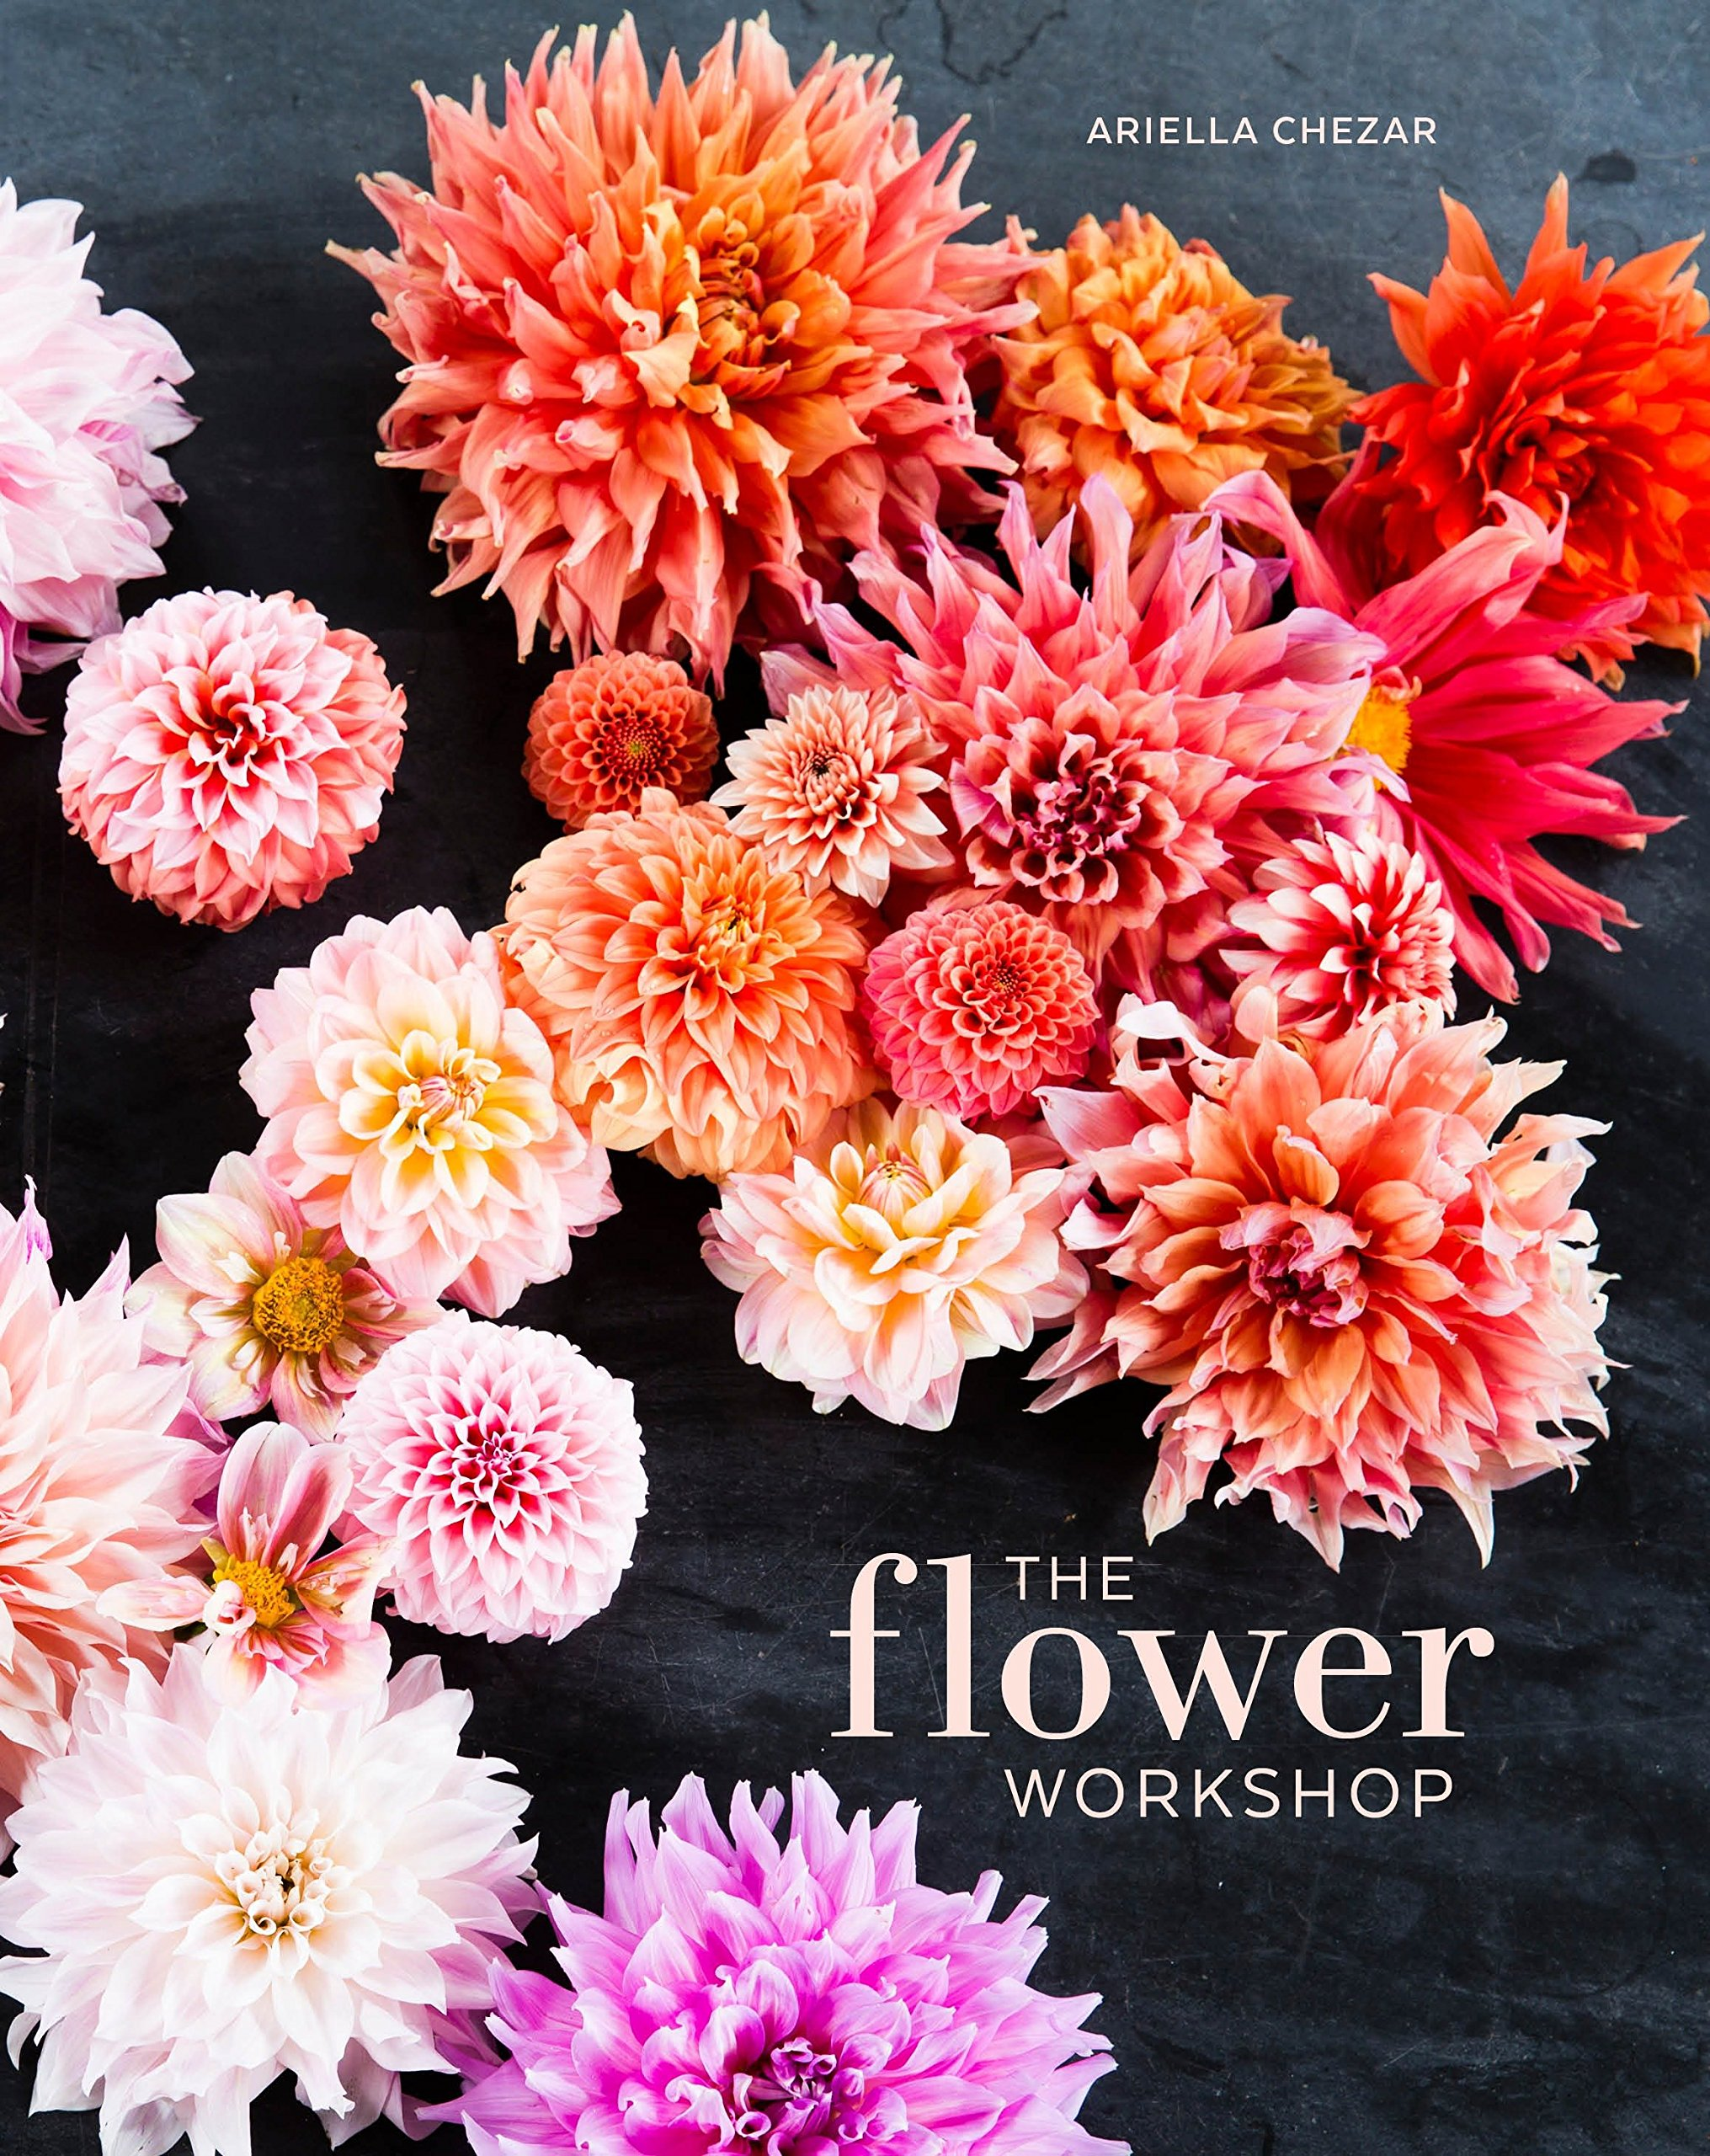 The flower workshop lessons in arranging blooms branches fruits the flower workshop lessons in arranging blooms branches fruits and foraged materials ariella chezar julie michaels 9781607747659 amazon books izmirmasajfo